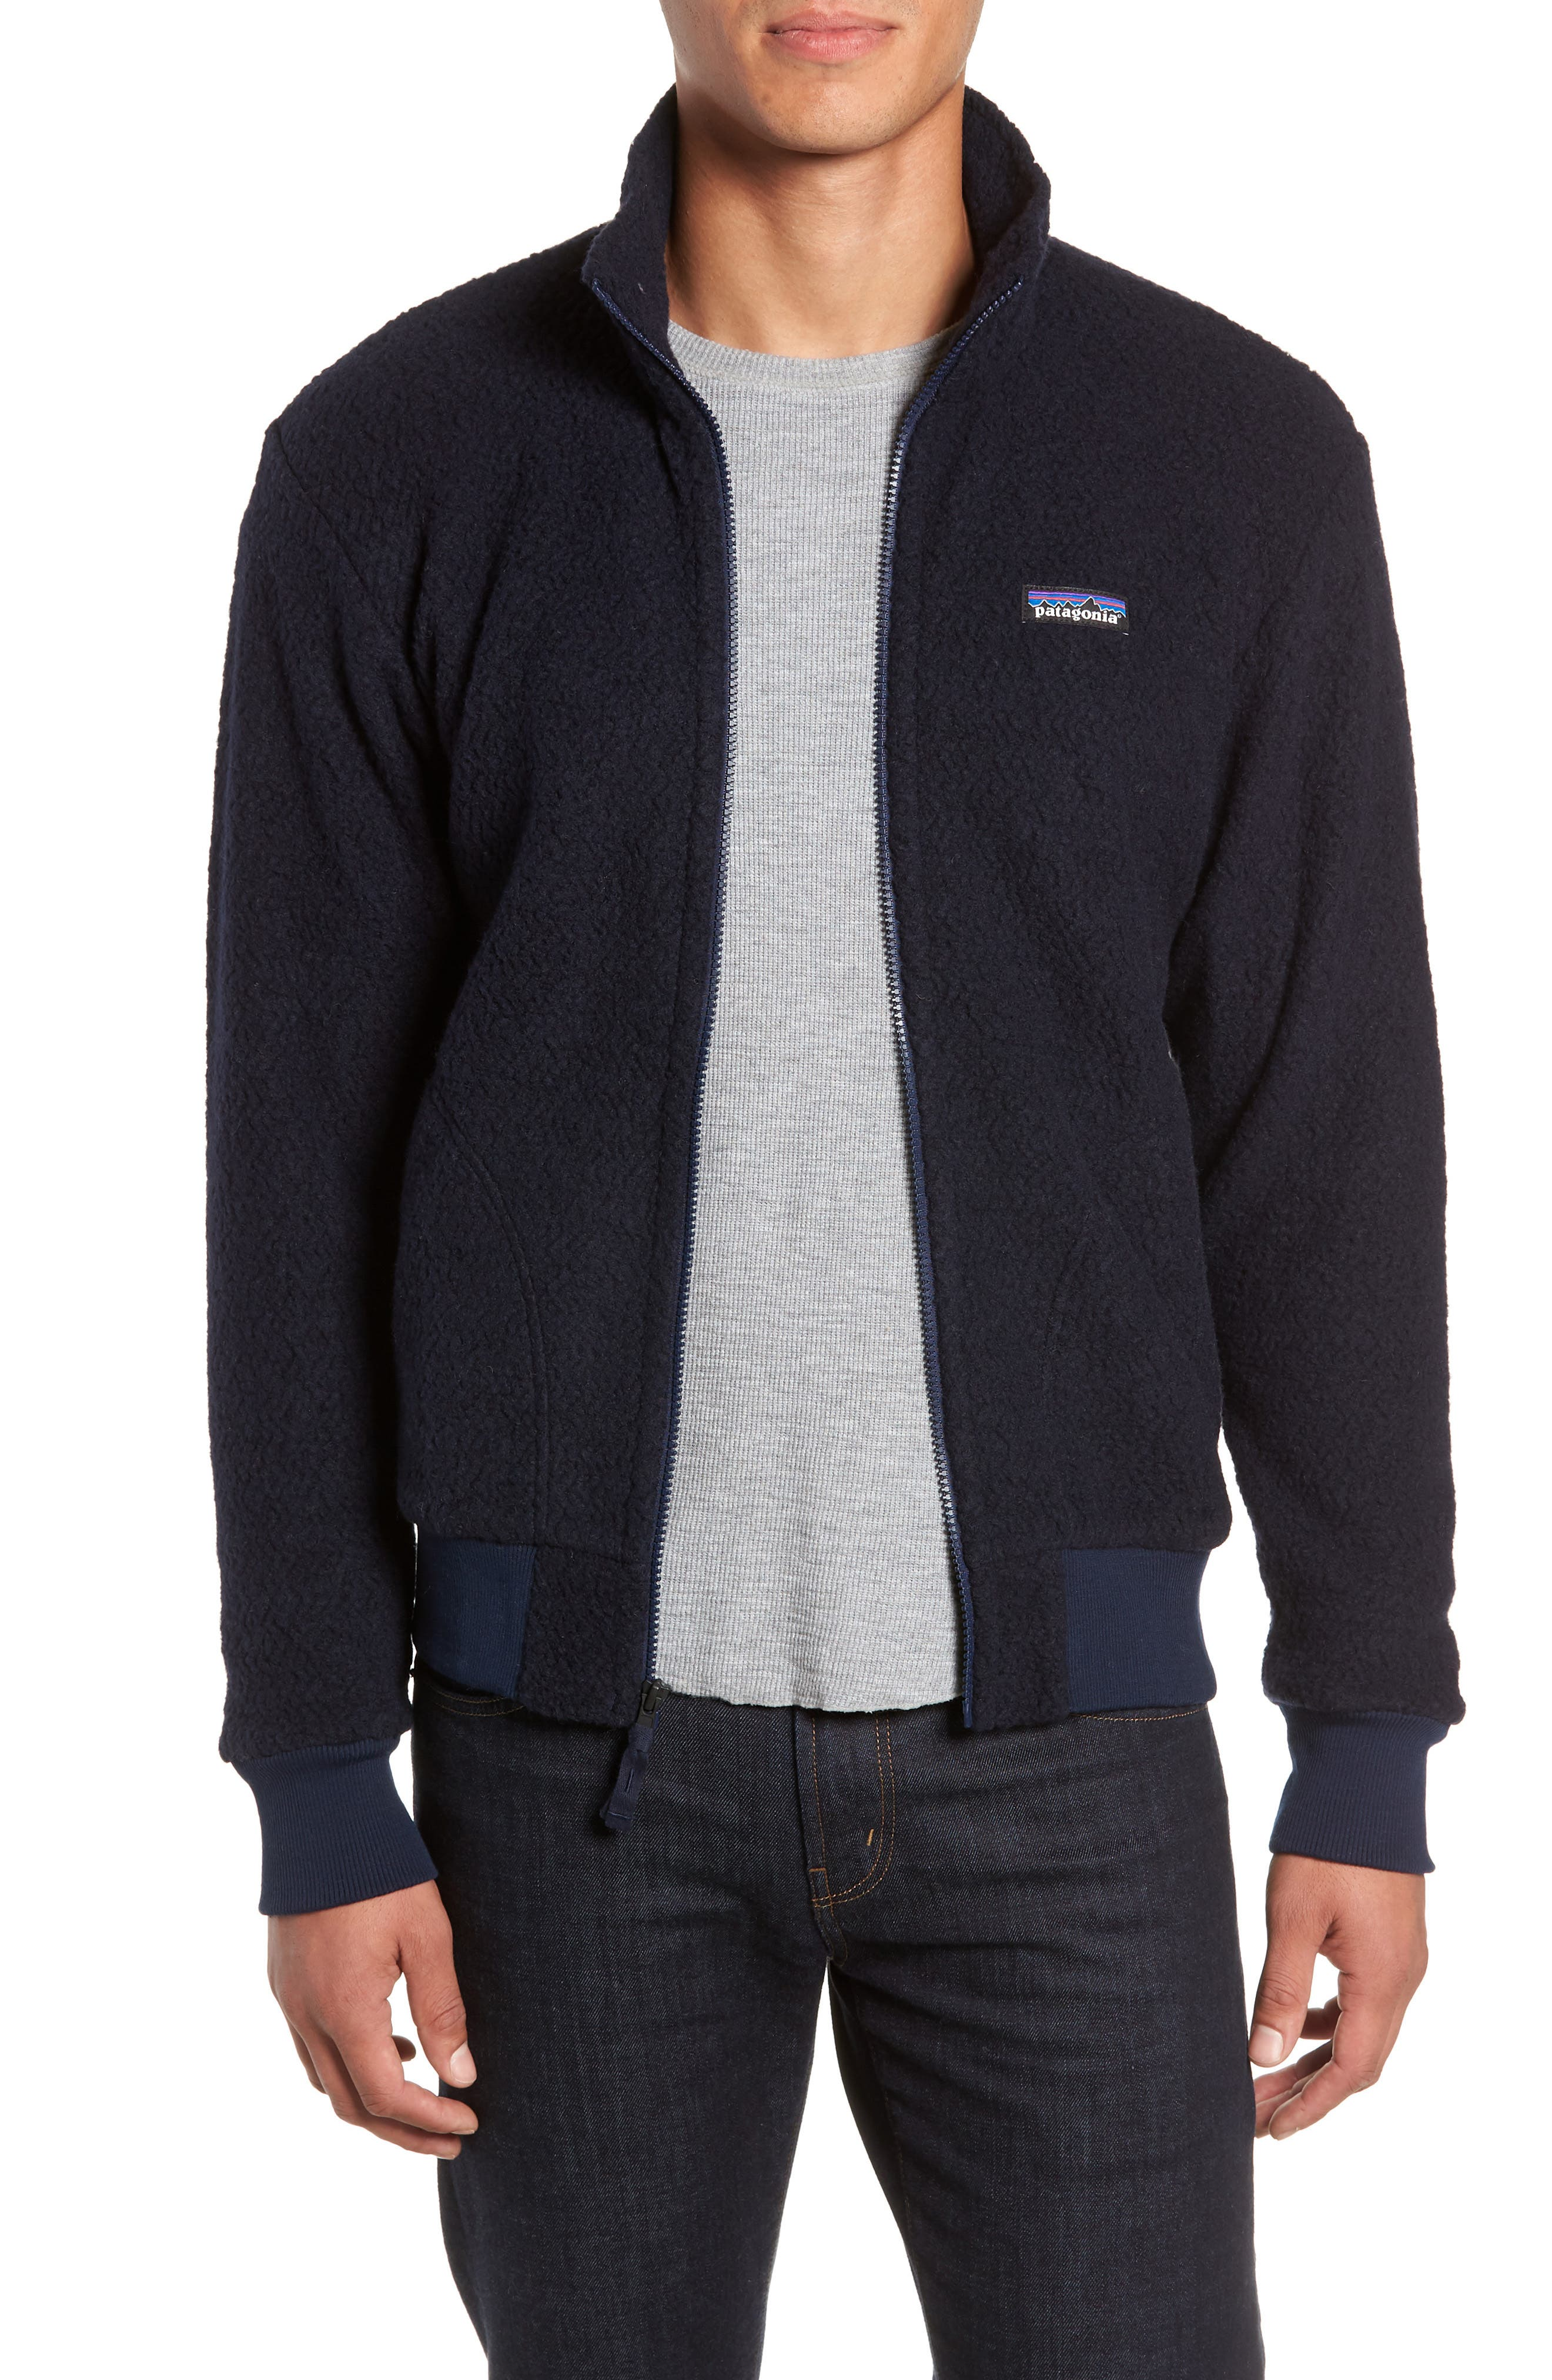 PATAGONIA Woolyester Fleece Jacket in Classic Navy